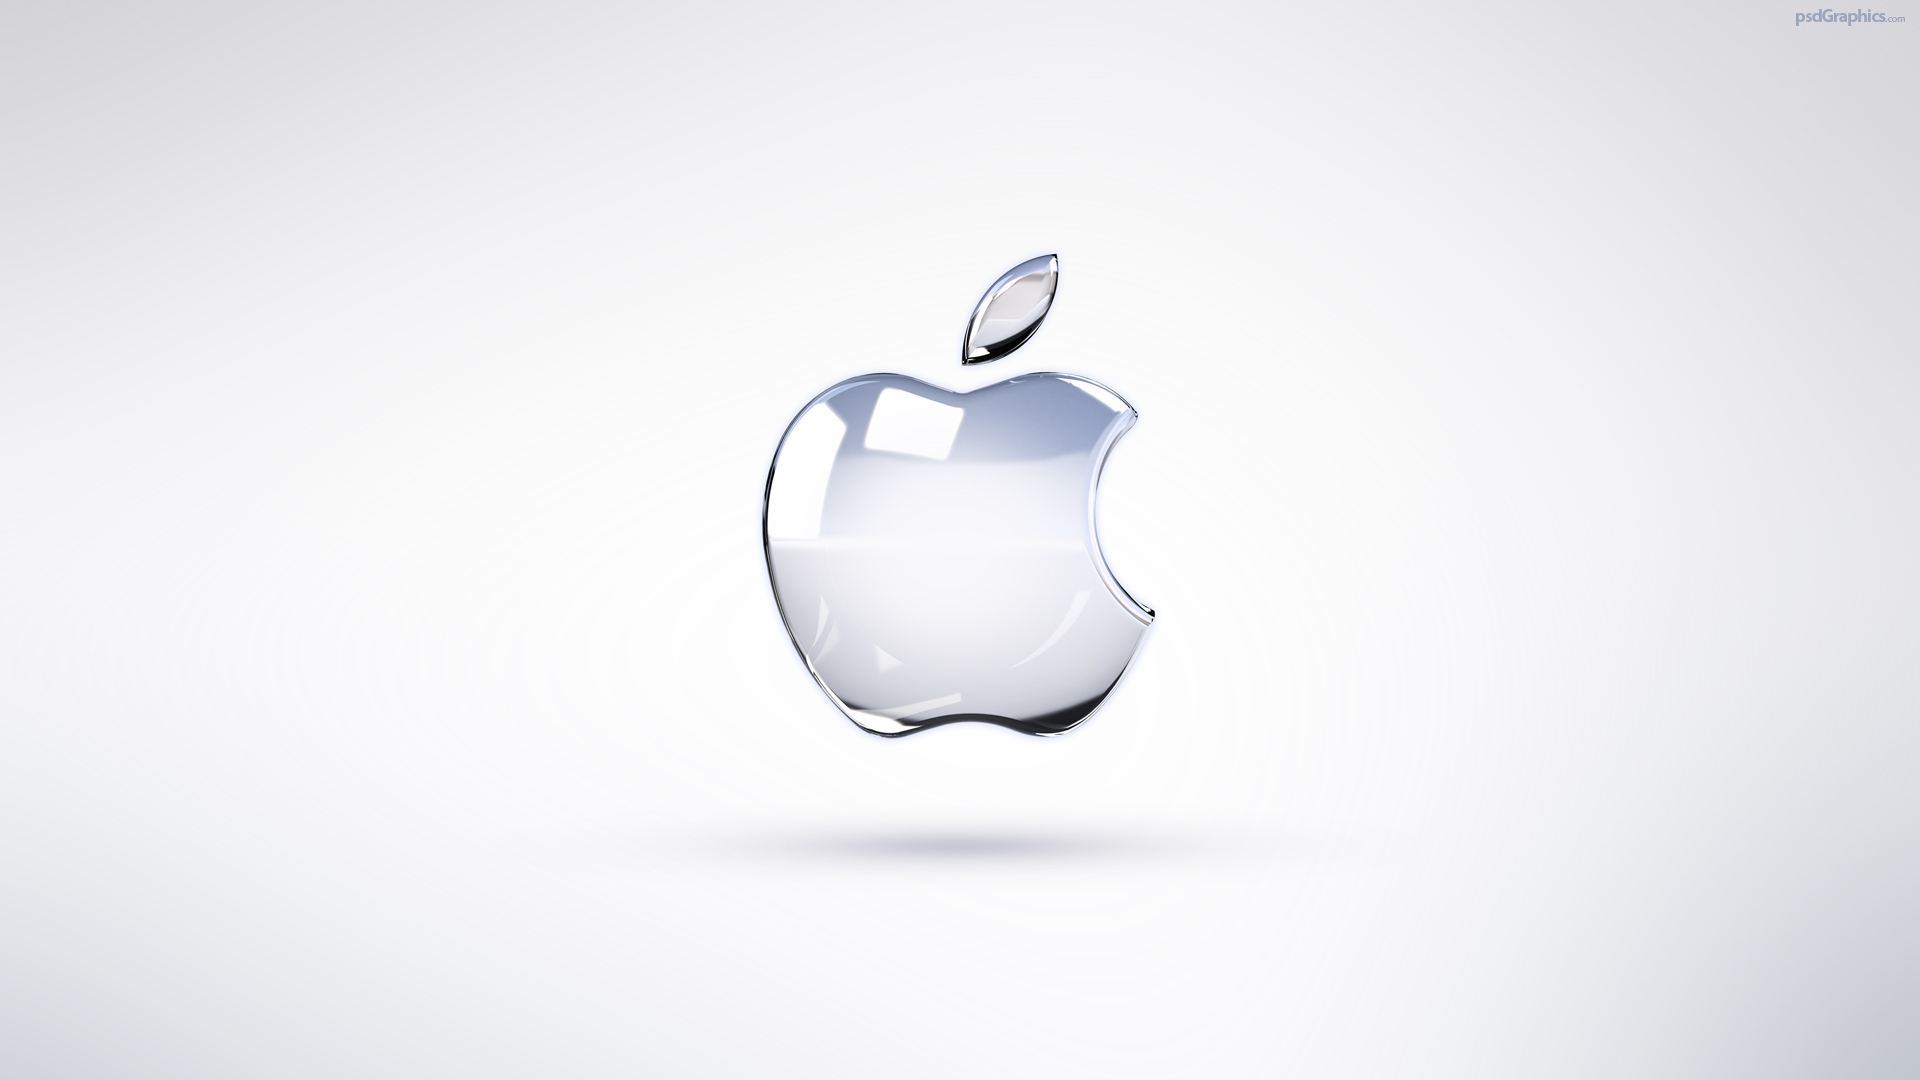 download desktop background apple background hd 1080p full size